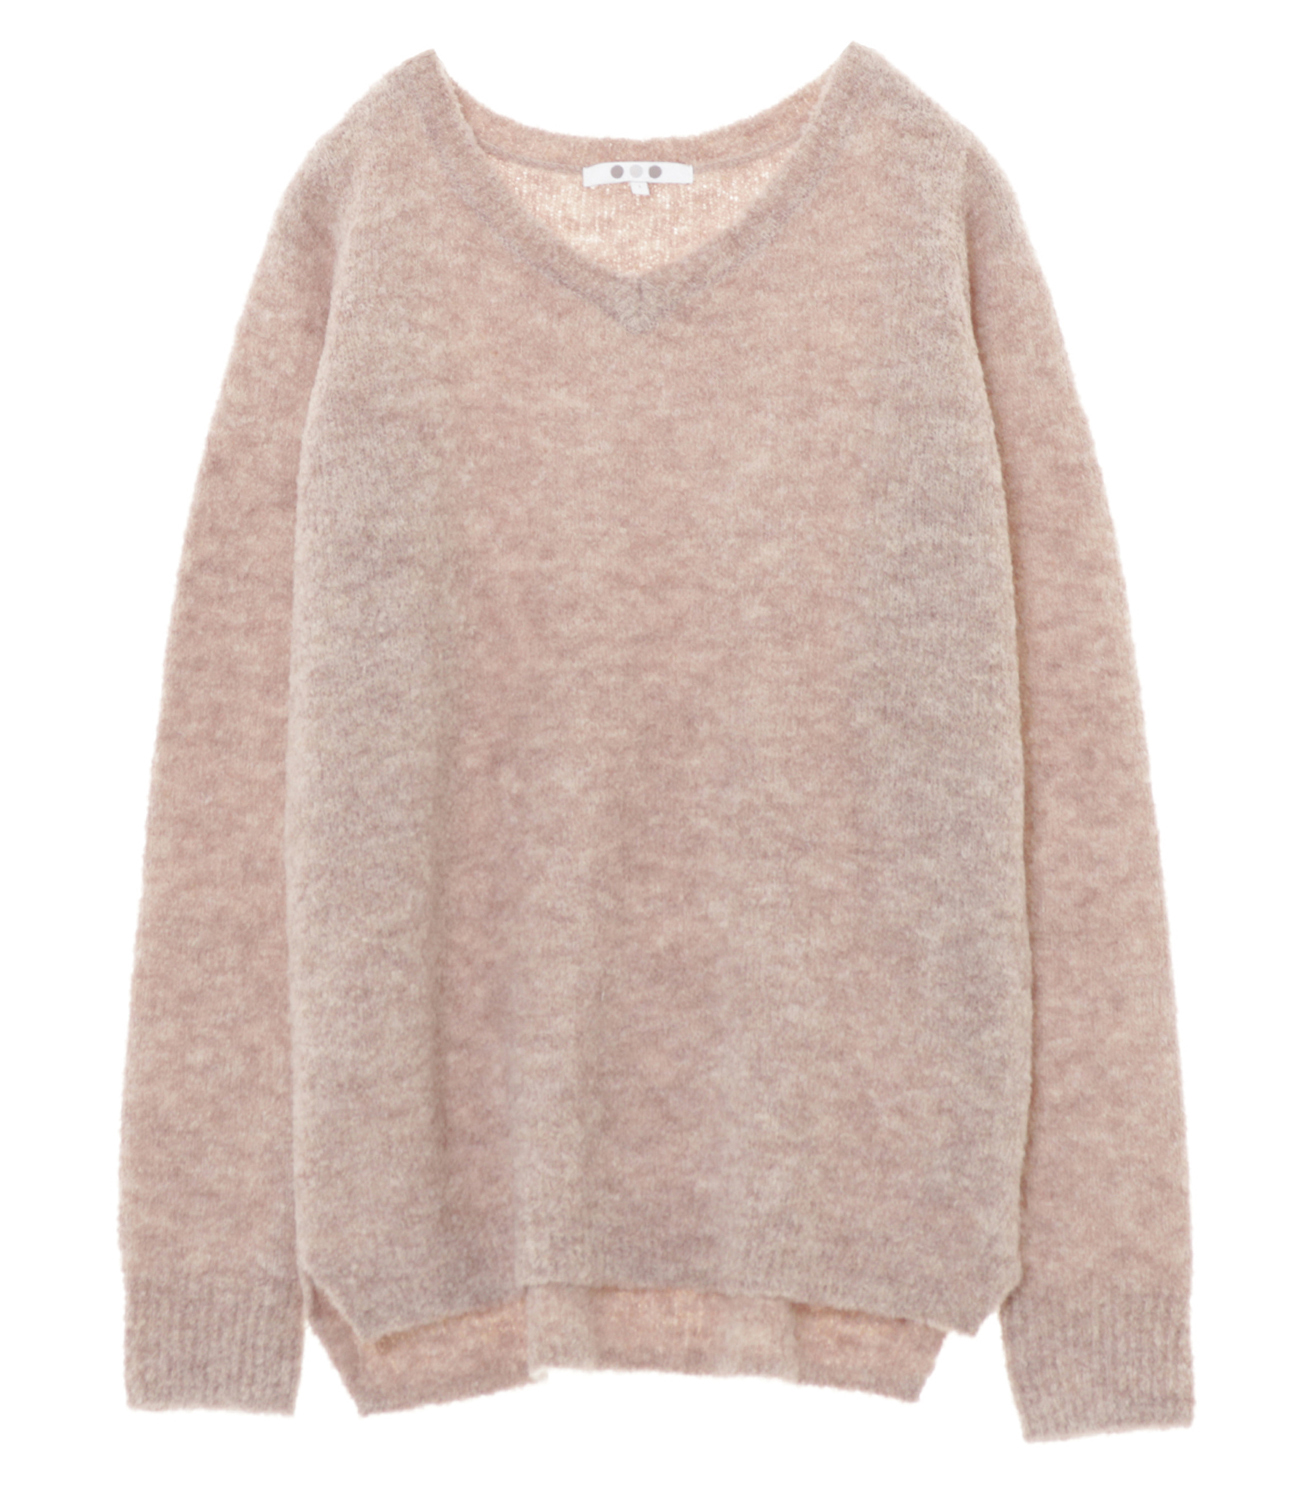 alpaca mixed boucle v neck pull 詳細画像 beige 1